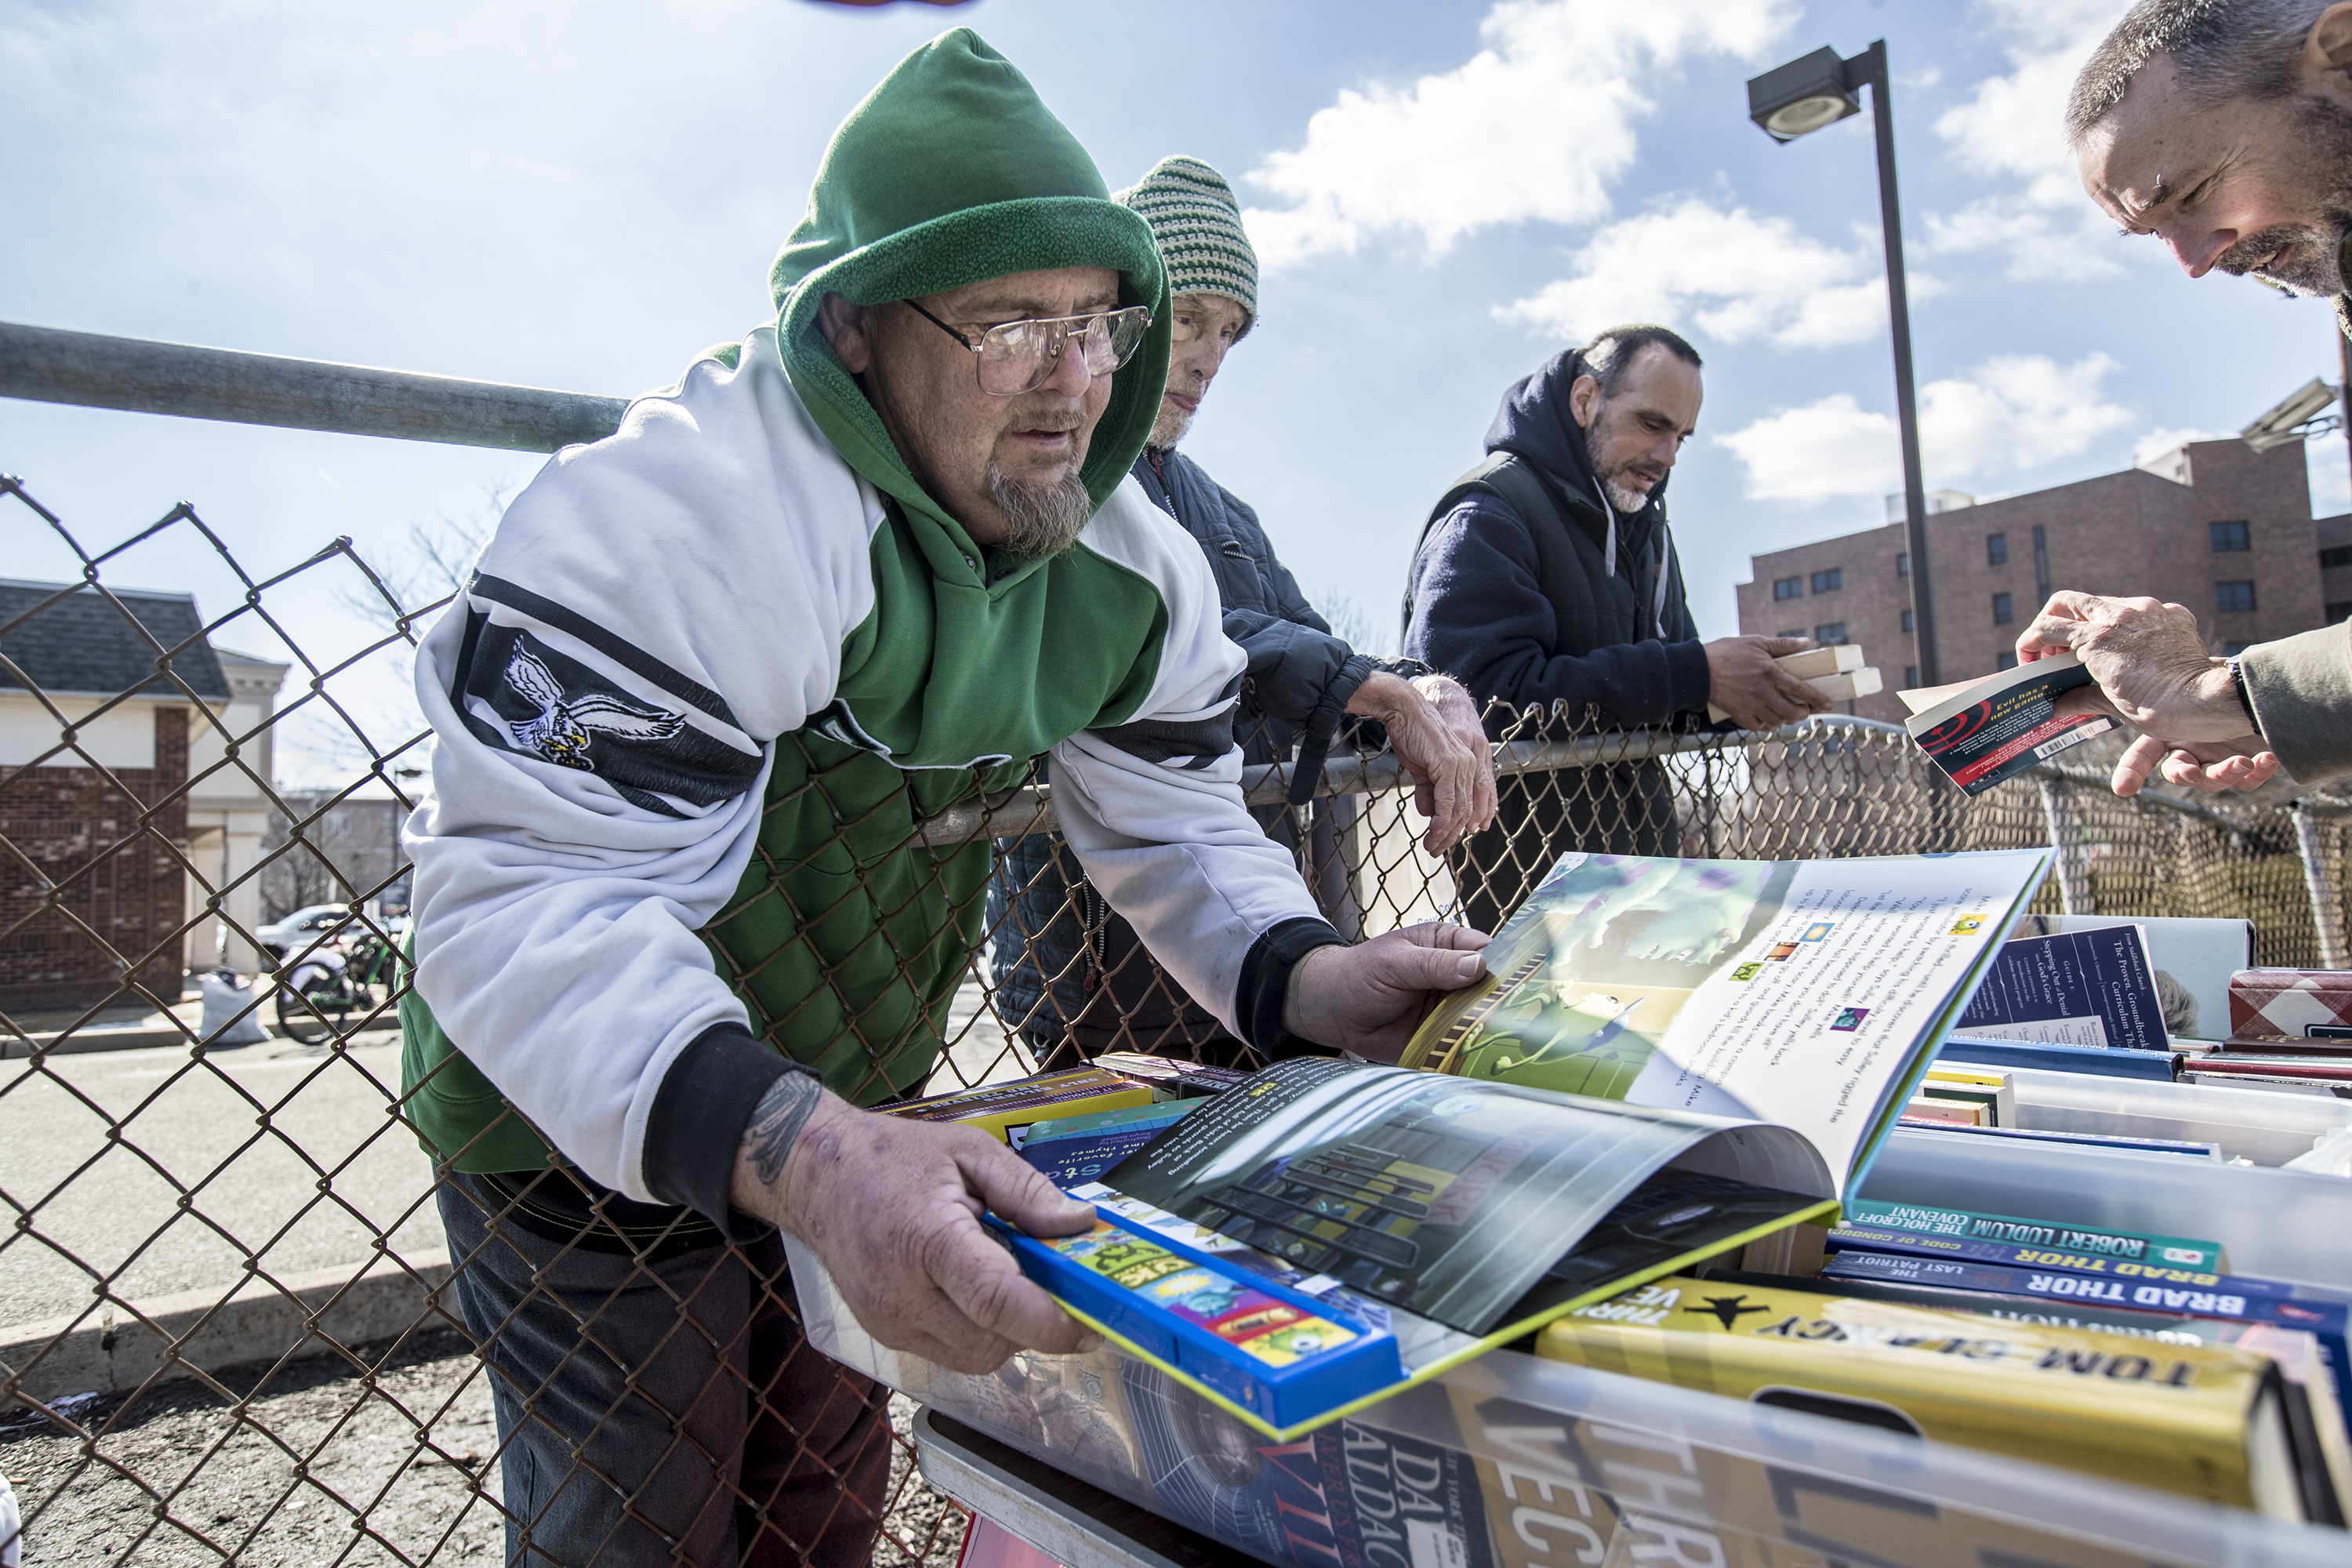 Tank B., left, a homeless man in Camden, NJ, leans over the fence to look over a book that he was going to pick up for his 3 1/2 year old daughter, at the Pop-Up Library that Tom Martin, right, regularly sets up in downtown Camden.